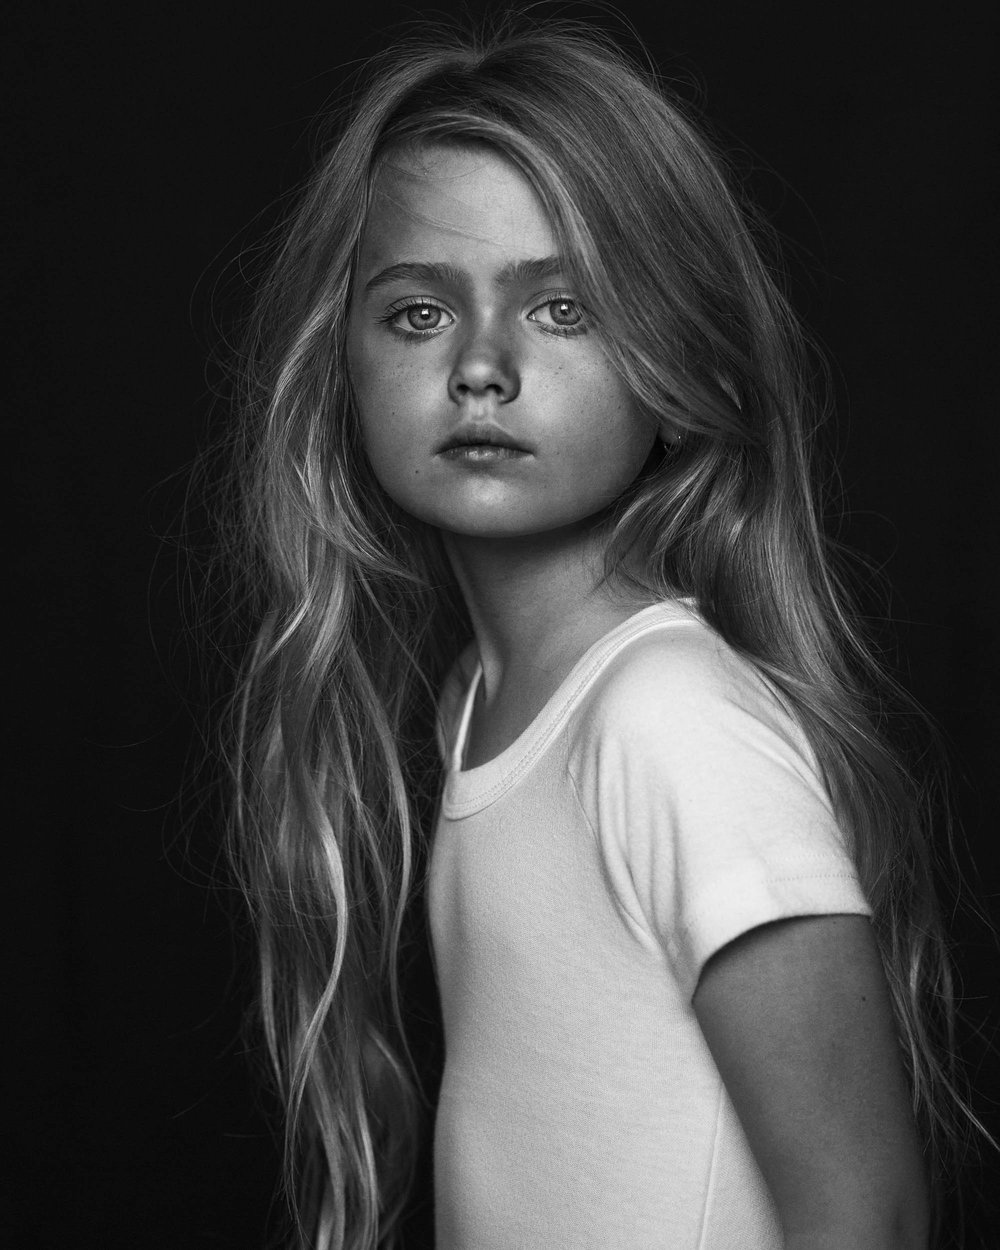 Black and White photo of Ellie by Nick Walters at Lumi Studio.jpg